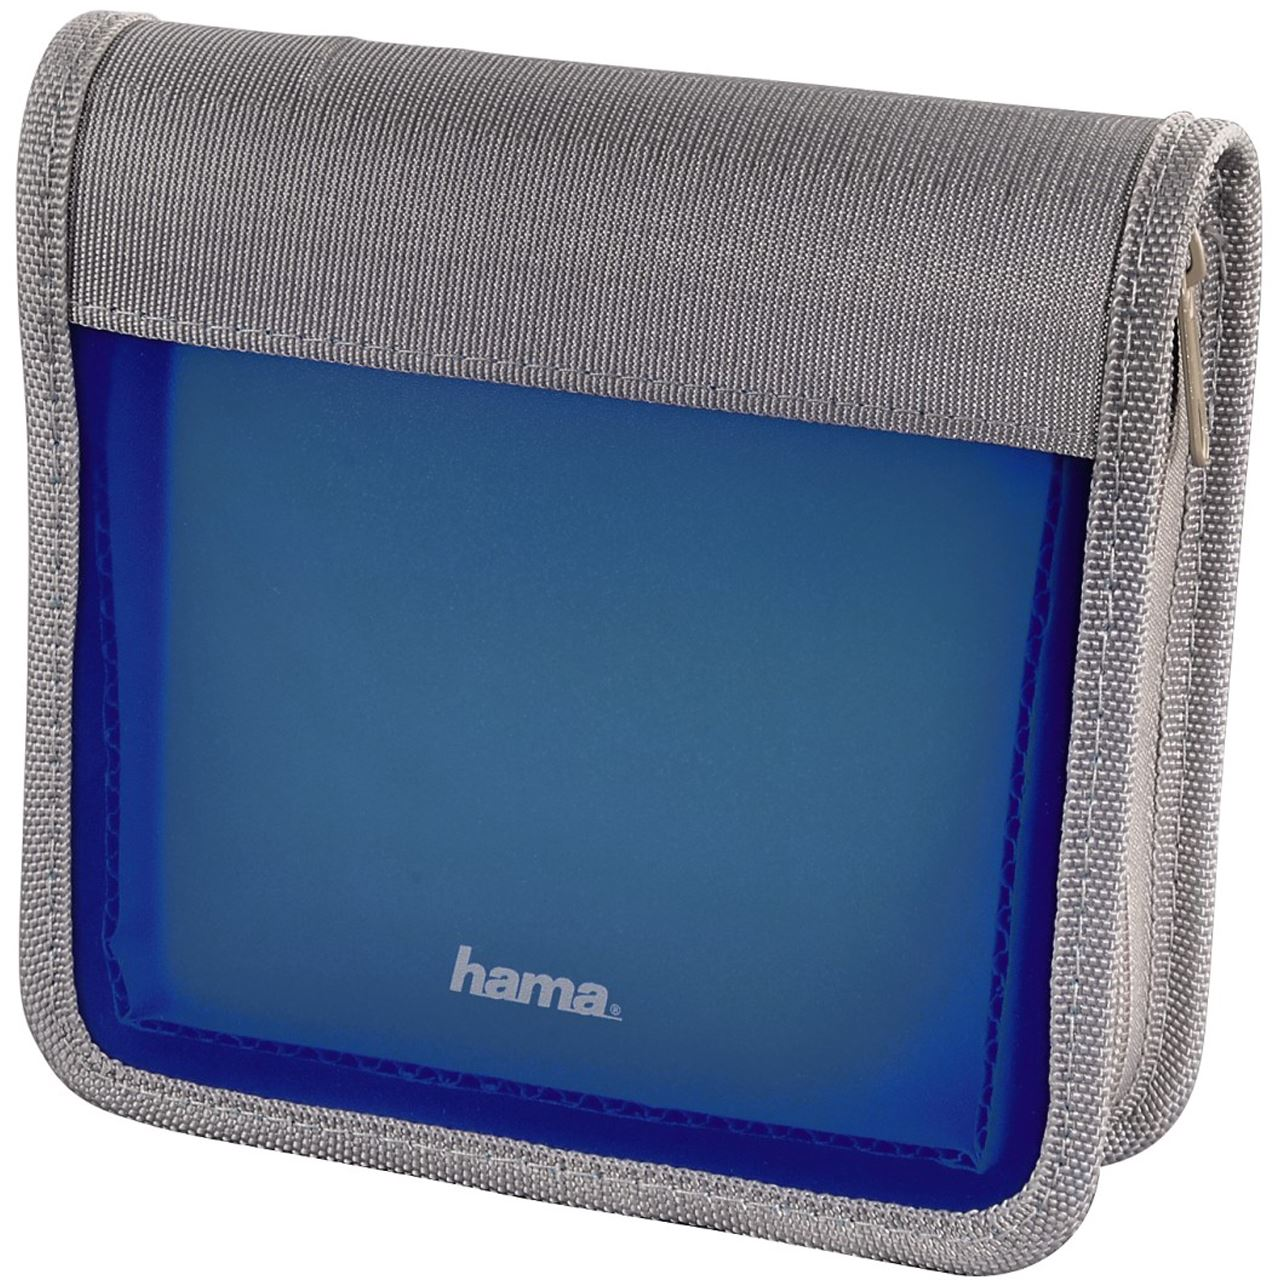 hama cd dvd blu ray wallet 28 blau silber tasche f r. Black Bedroom Furniture Sets. Home Design Ideas